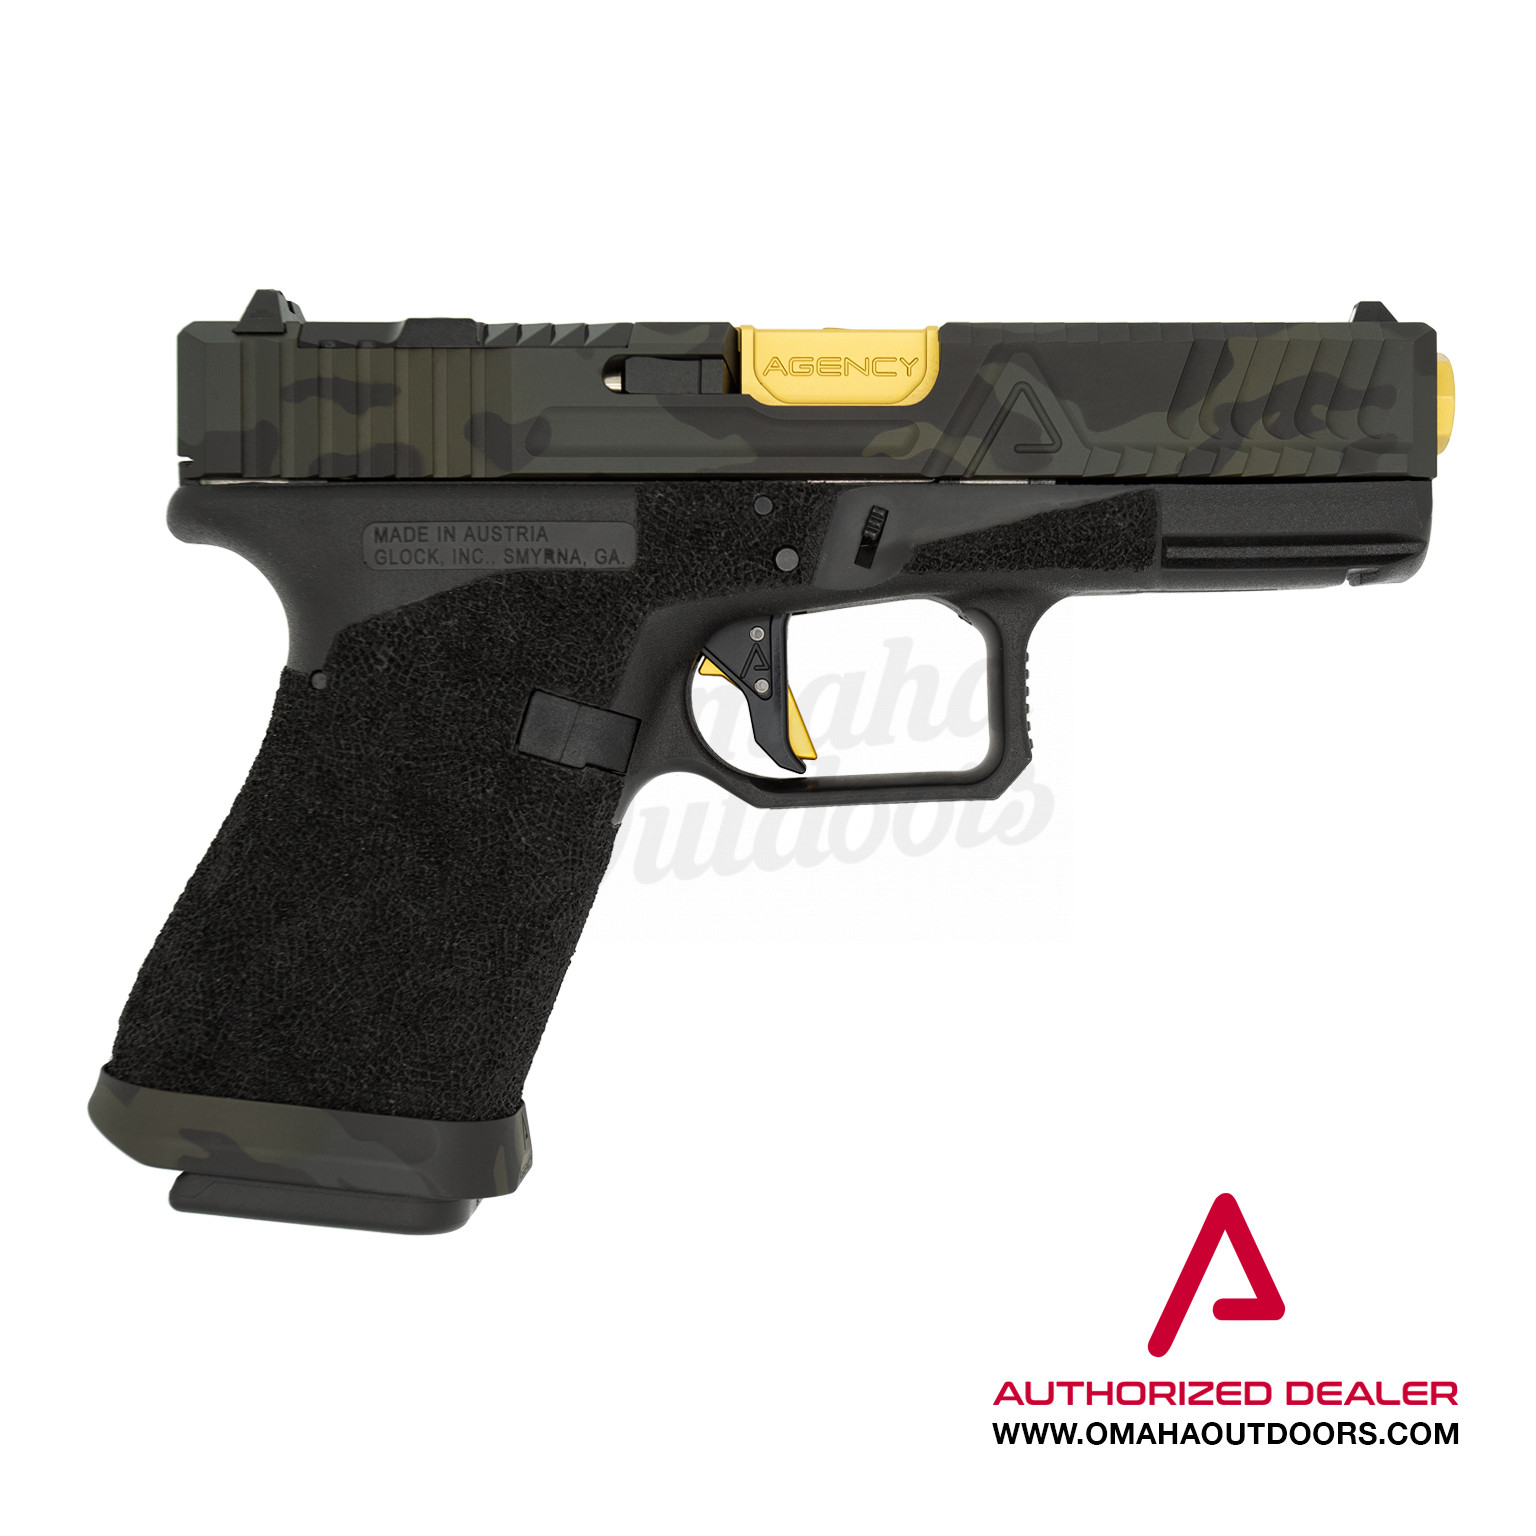 Agency Arms Glock 19 Gen 3 Hybrid Pistol 9mm Black MultiCam Slide 15 RD  AA-G19-G3-URBAN-BMC-SL-MW-PREM-TIN-BBL